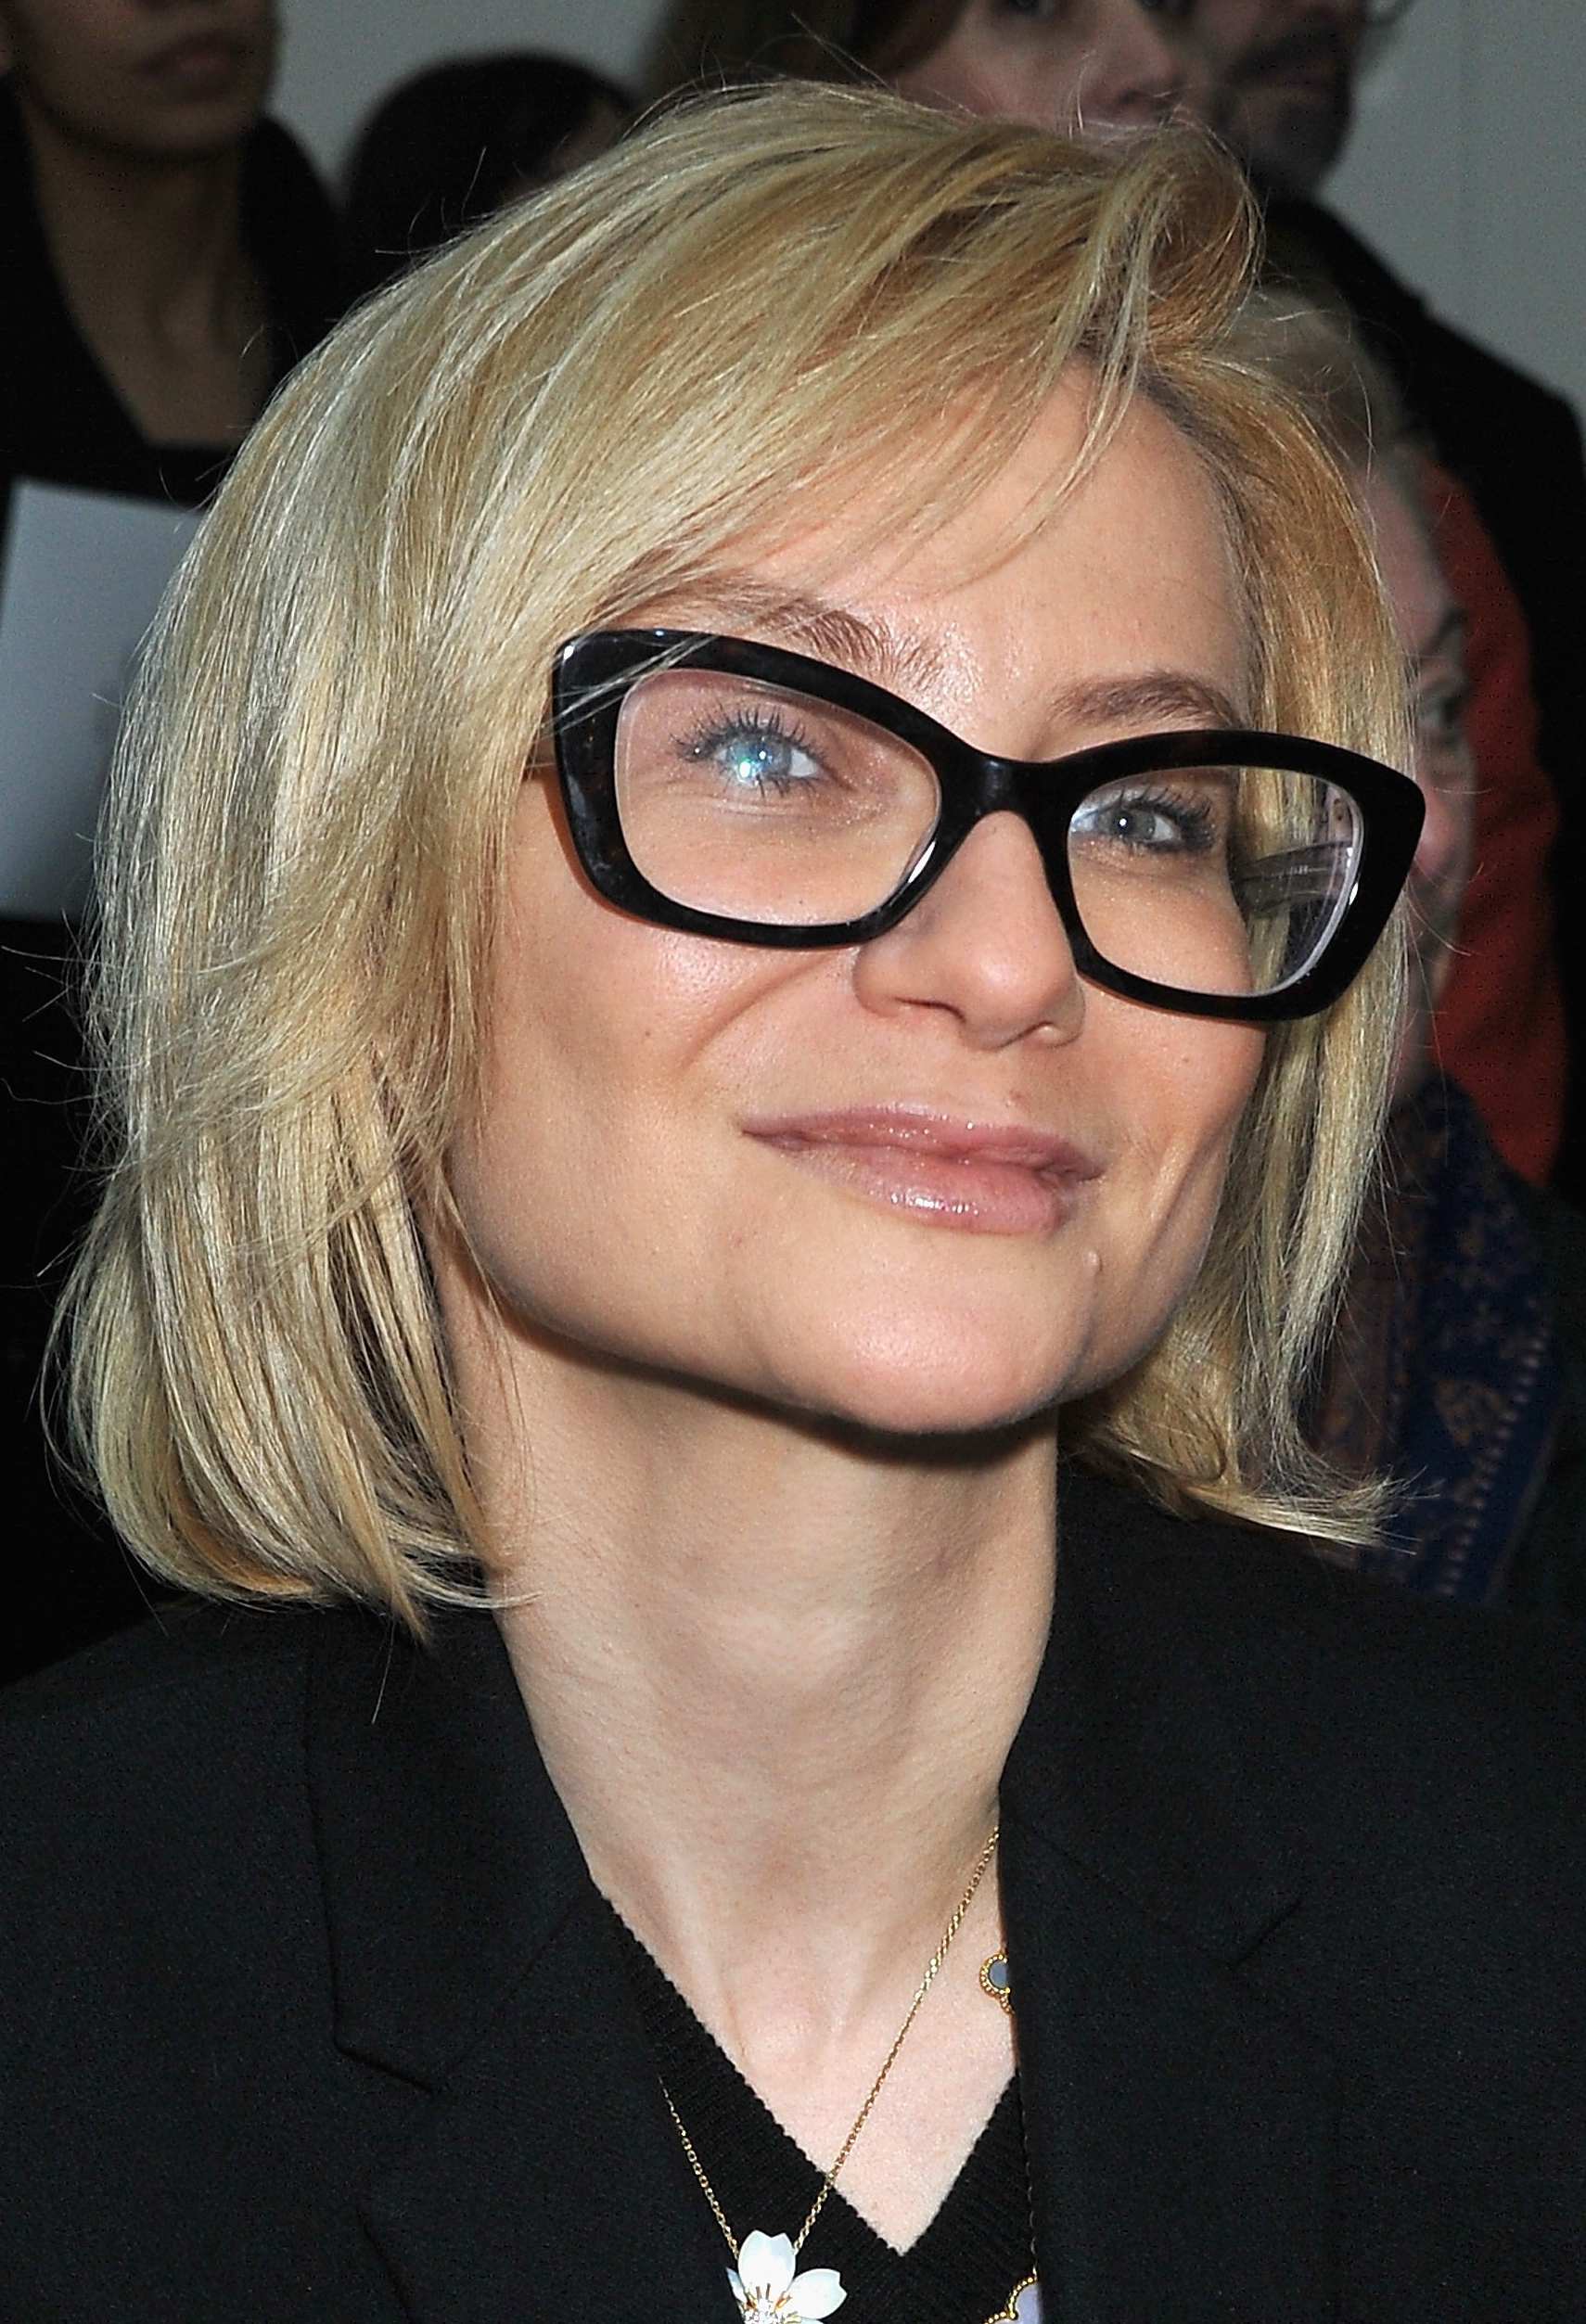 Short Hairstyles For Women Over 50 With Glasses – Hairstyle For With Short Haircuts For Women With Glasses (View 16 of 25)